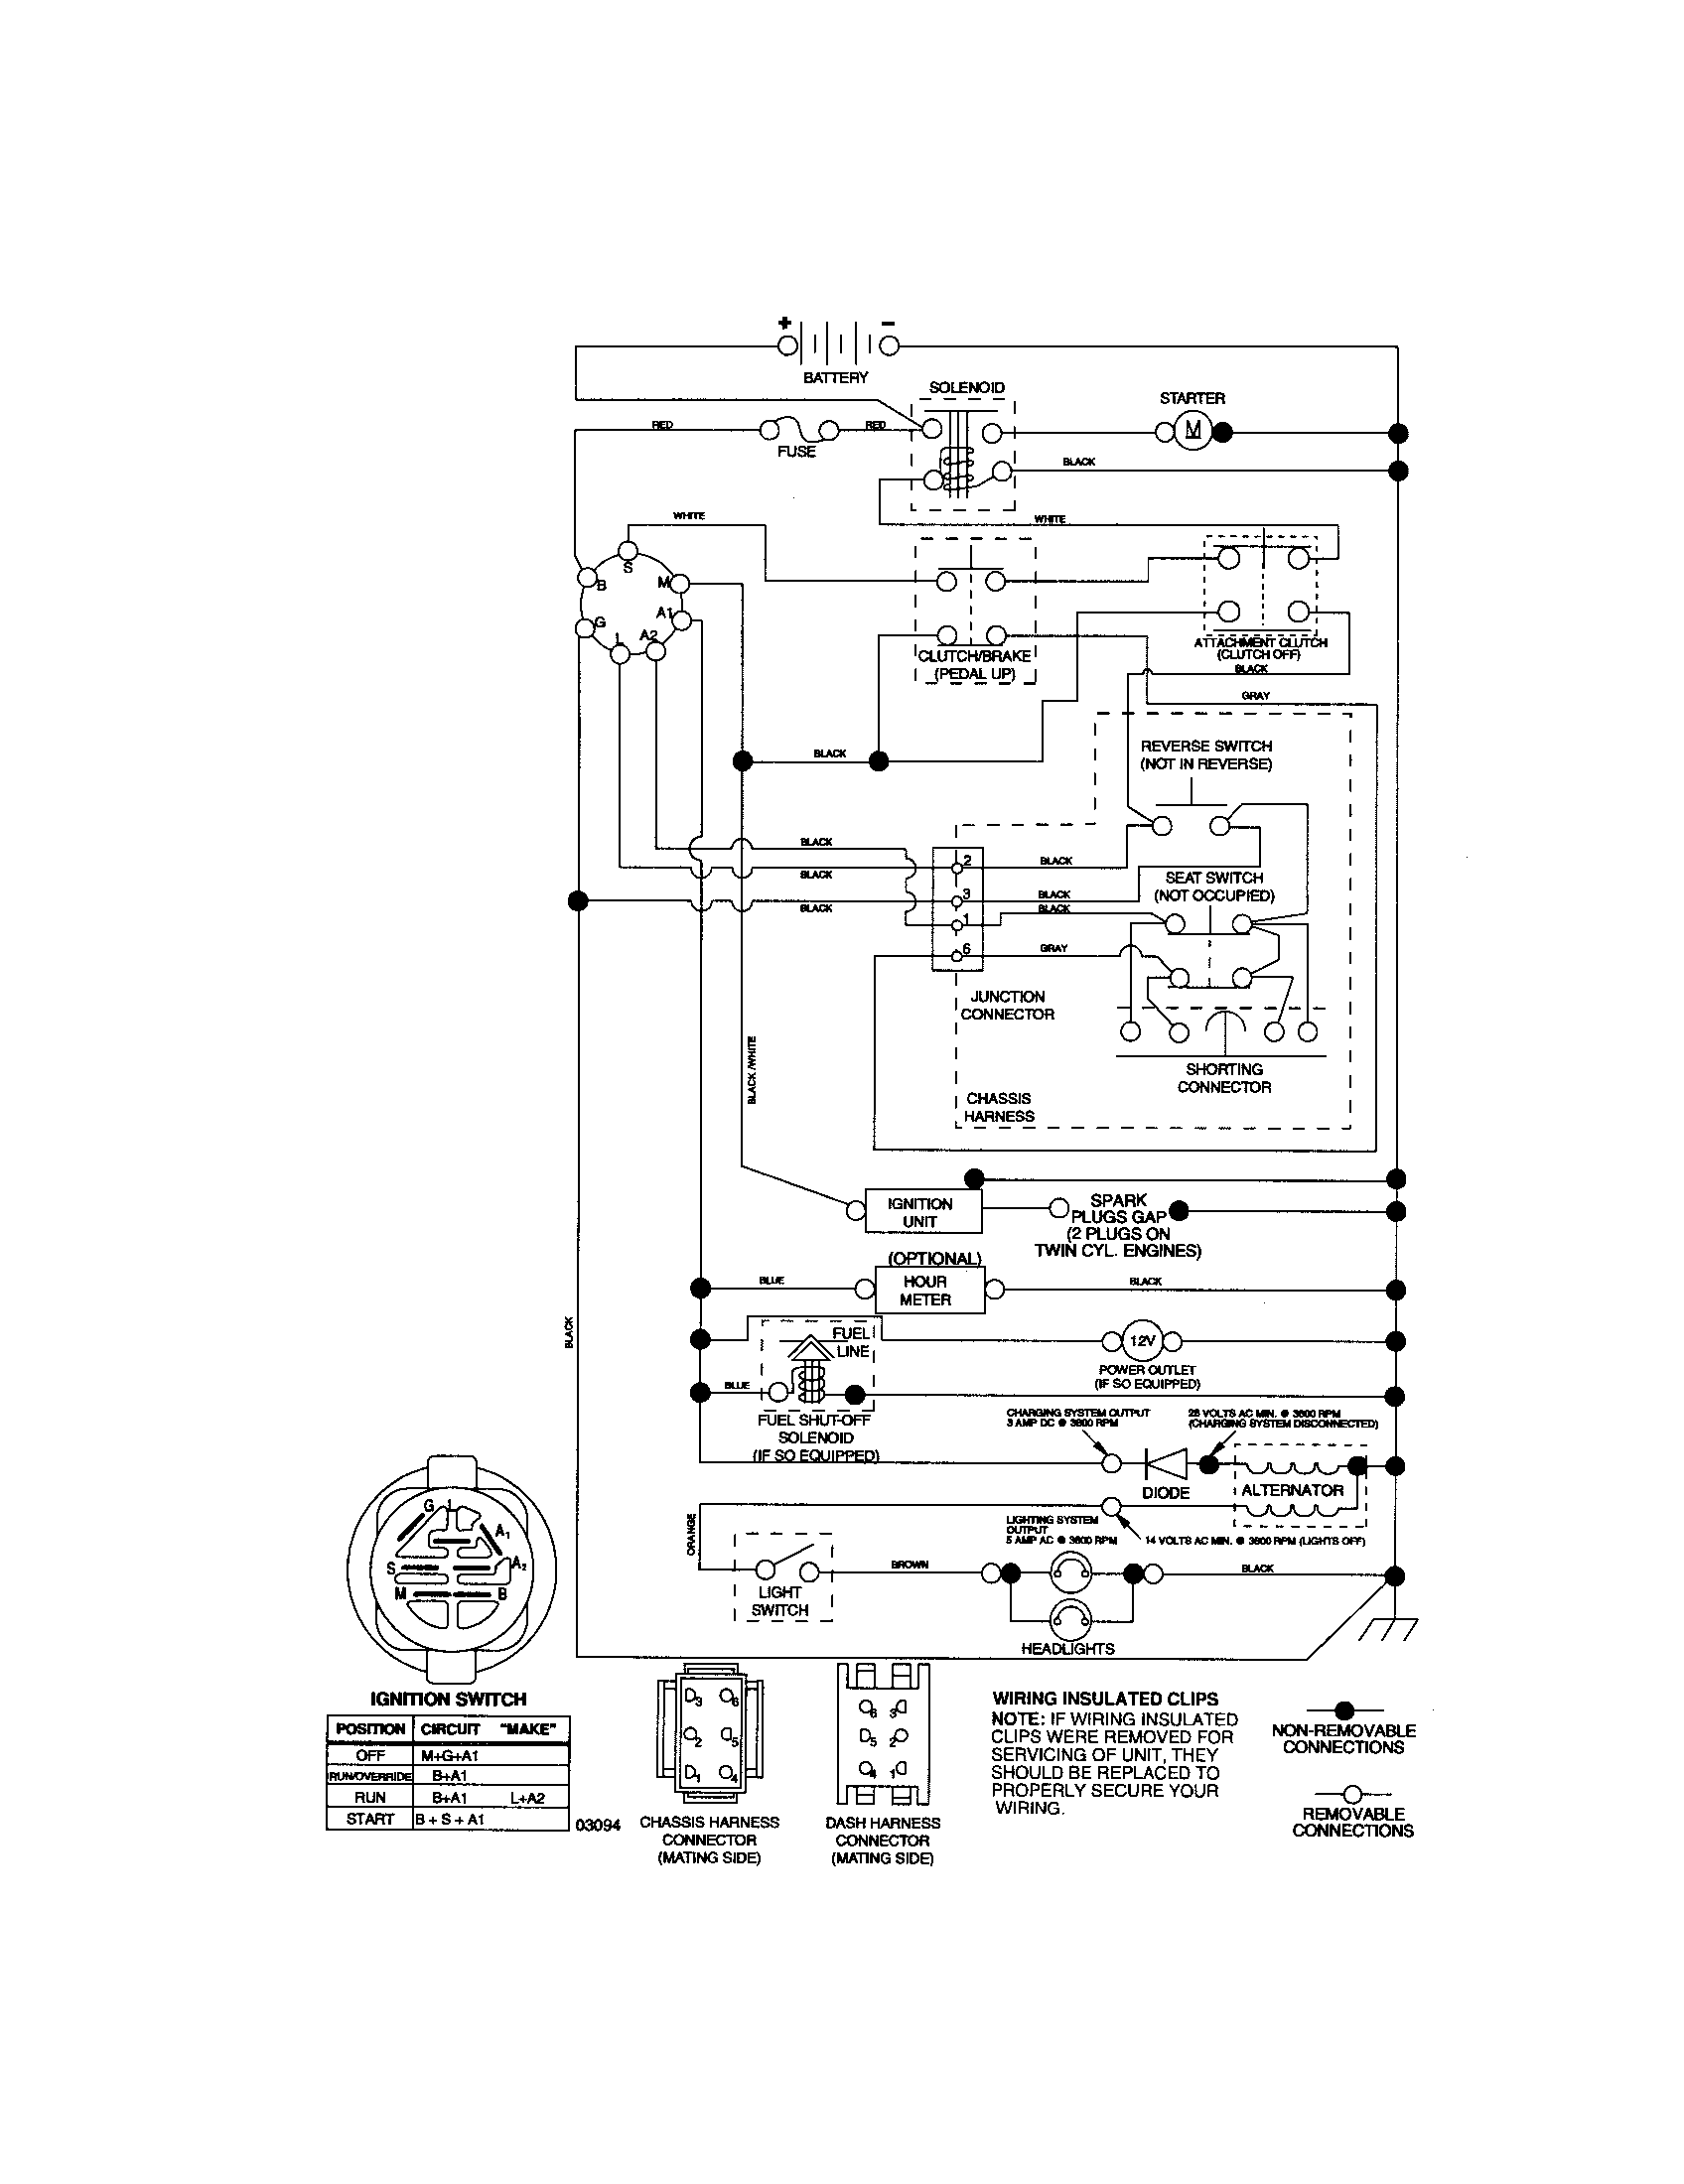 looking for craftsman model 917276600 front engine lawn tractor wiring diagram for sears lawn tractor [ 1696 x 2200 Pixel ]